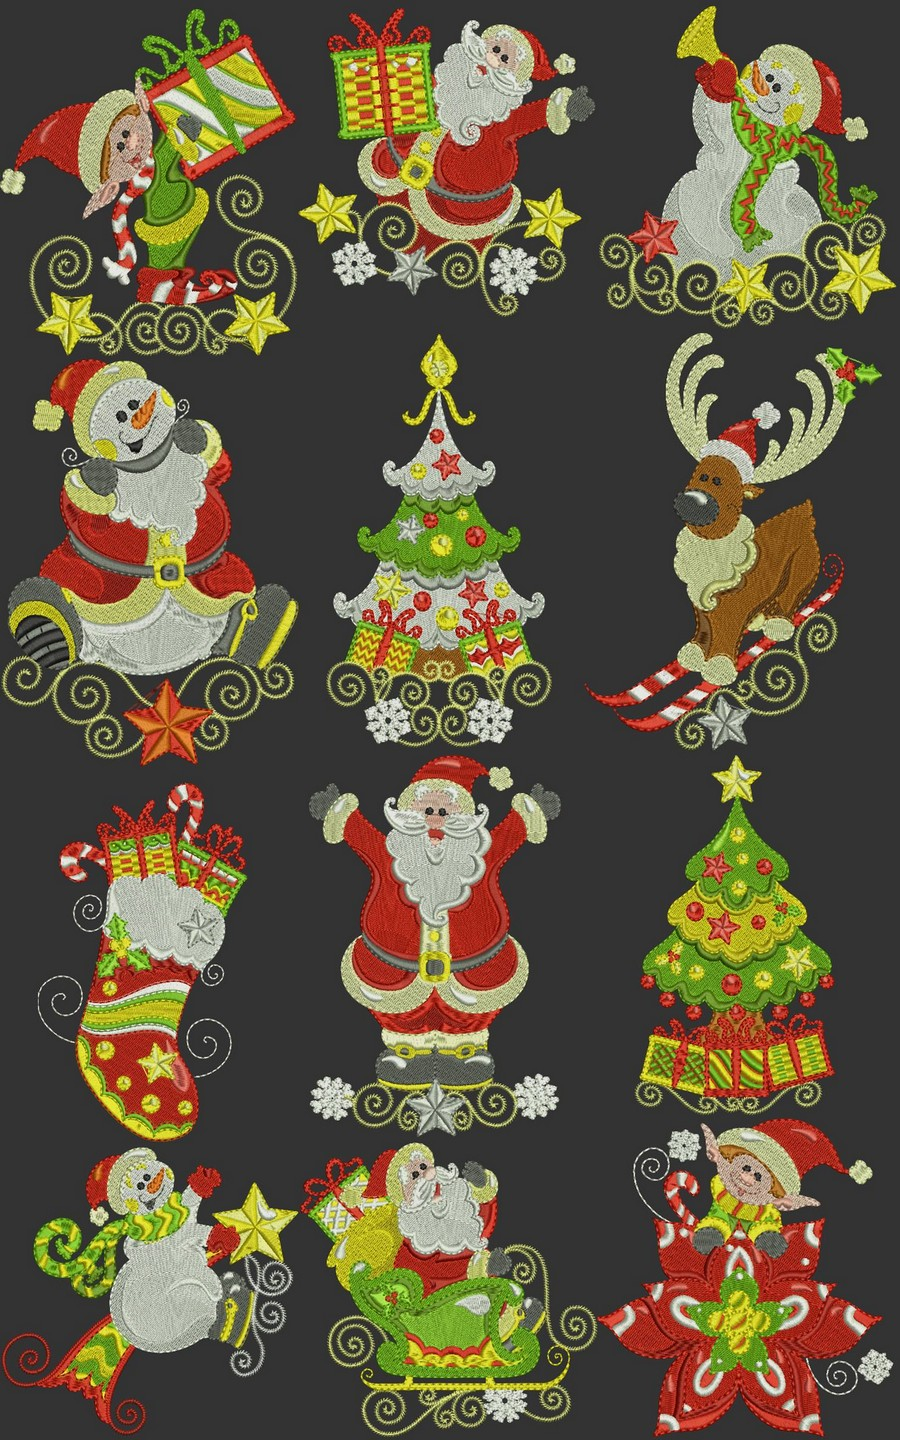 Embroidery Patterns Christmas Swirly Curly Christmas Time